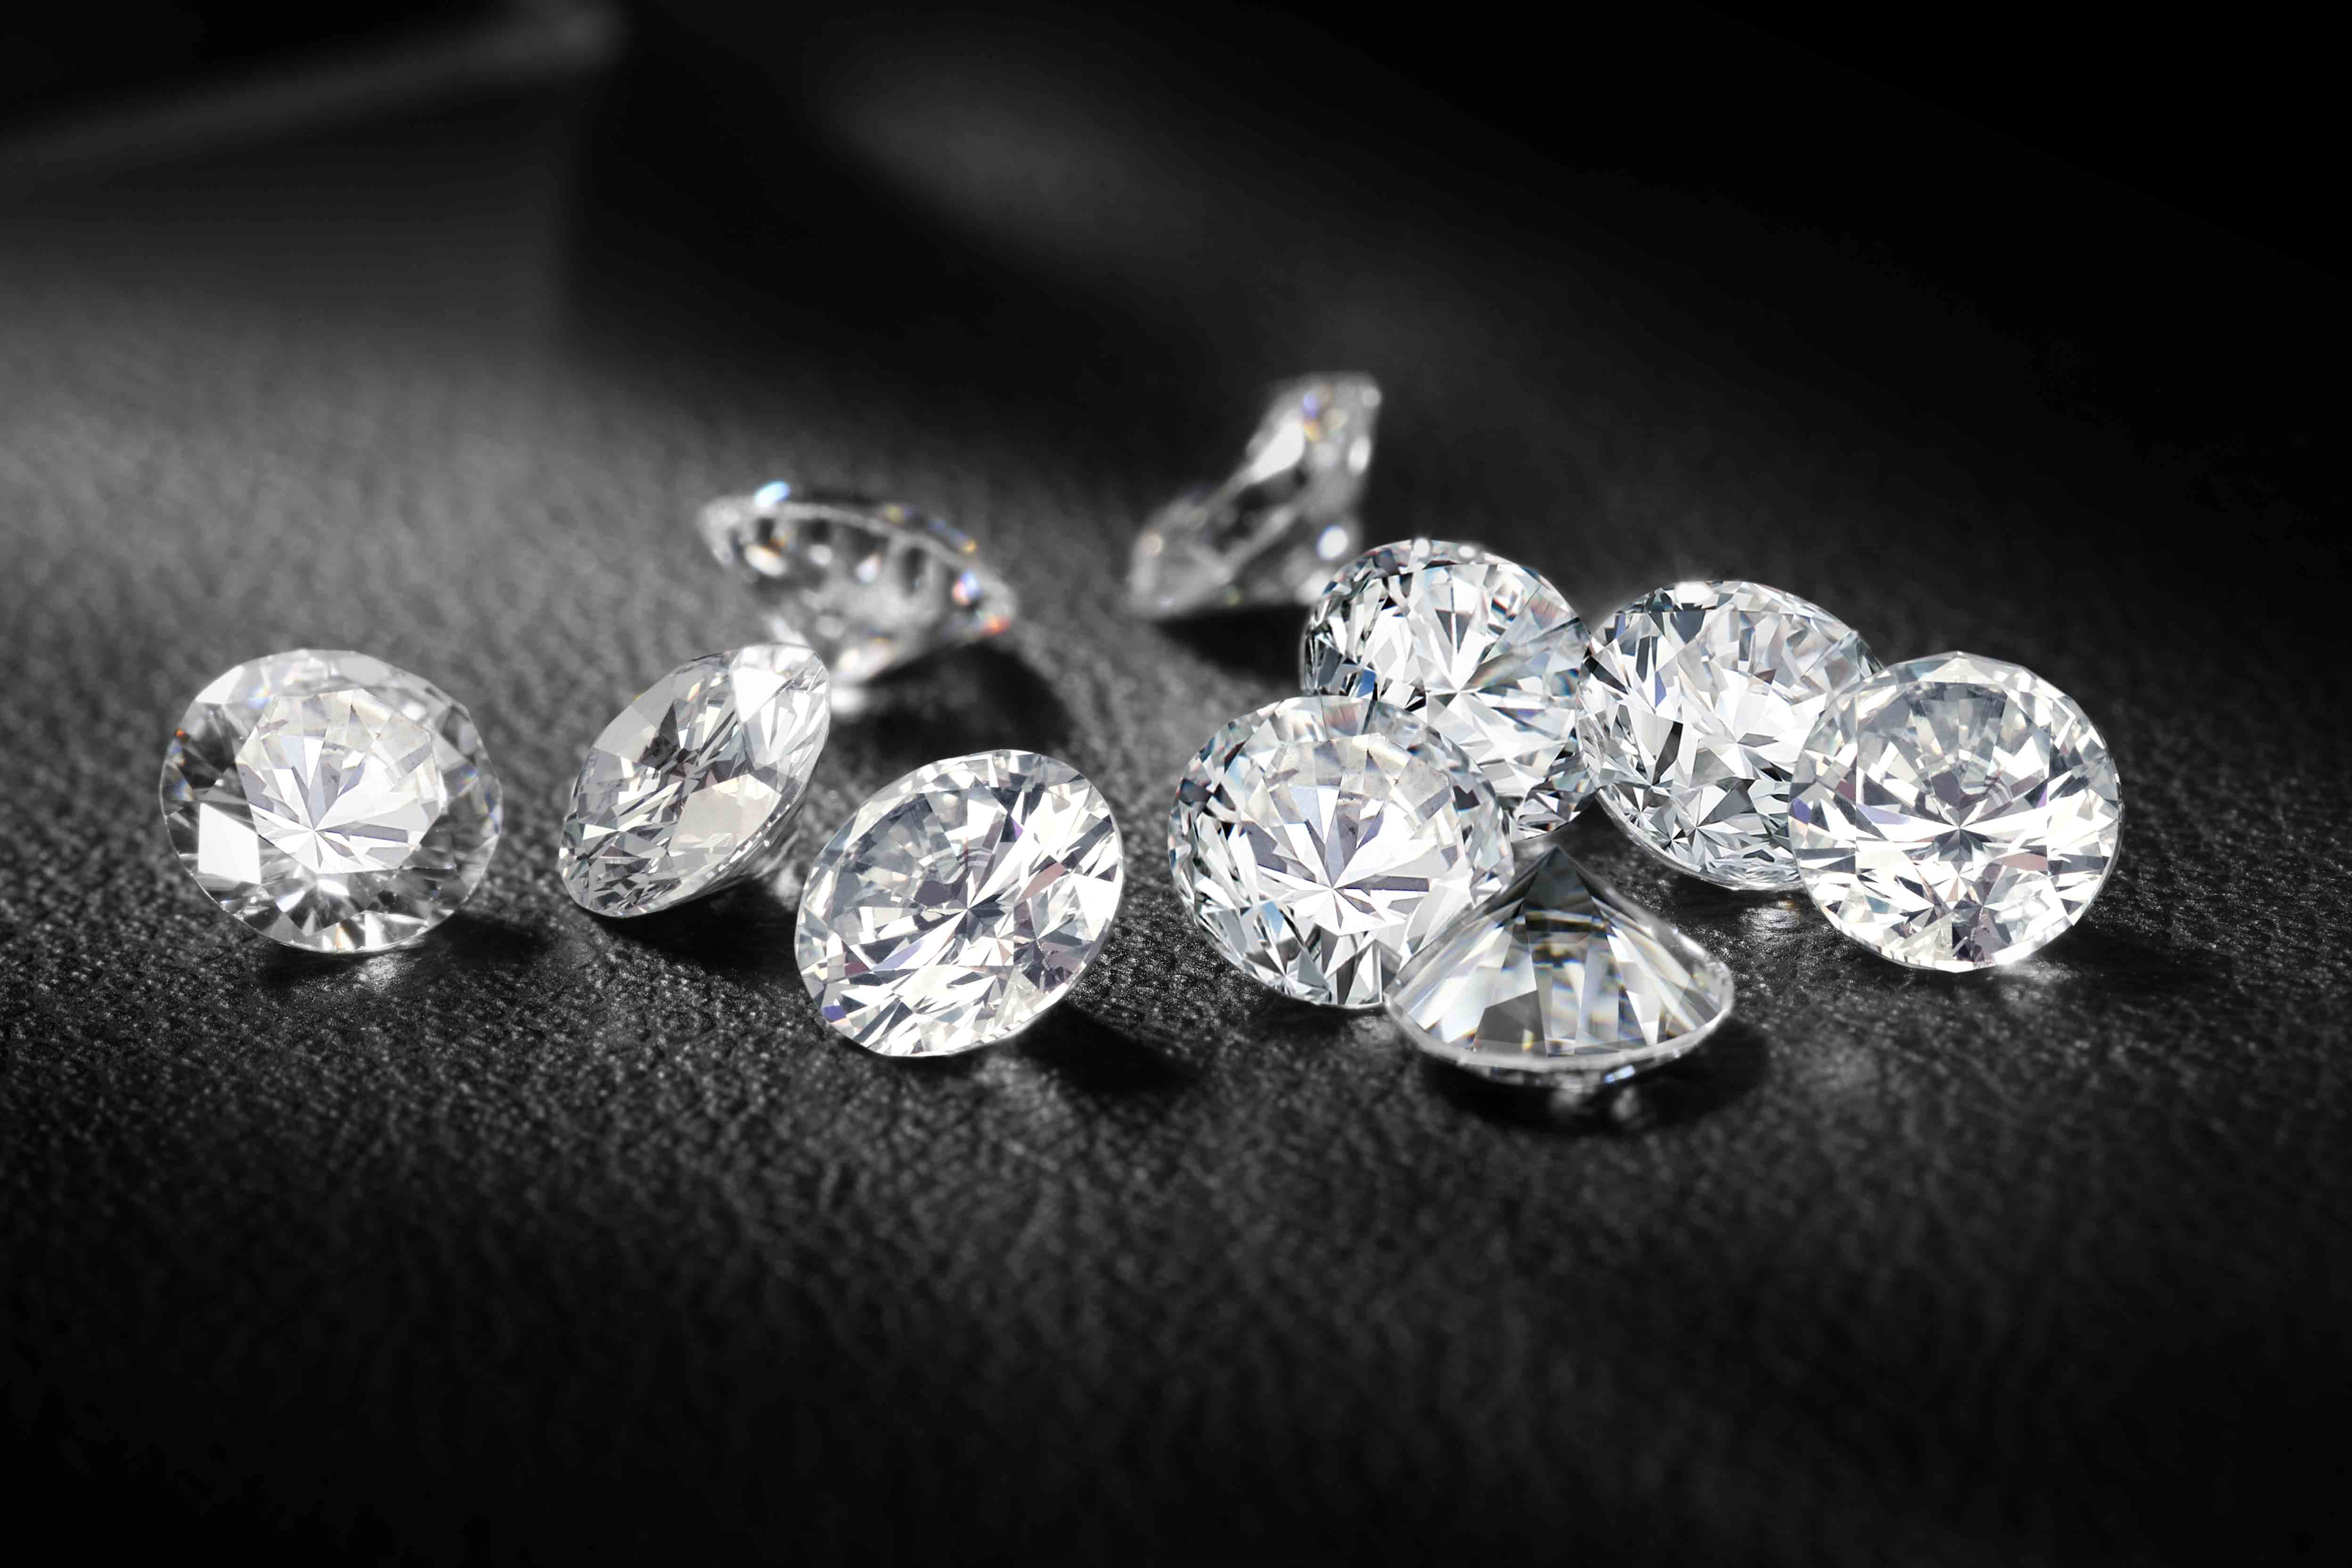 Sparkling Diamond HD Wallpaper Others Wallpapers 4992x3328